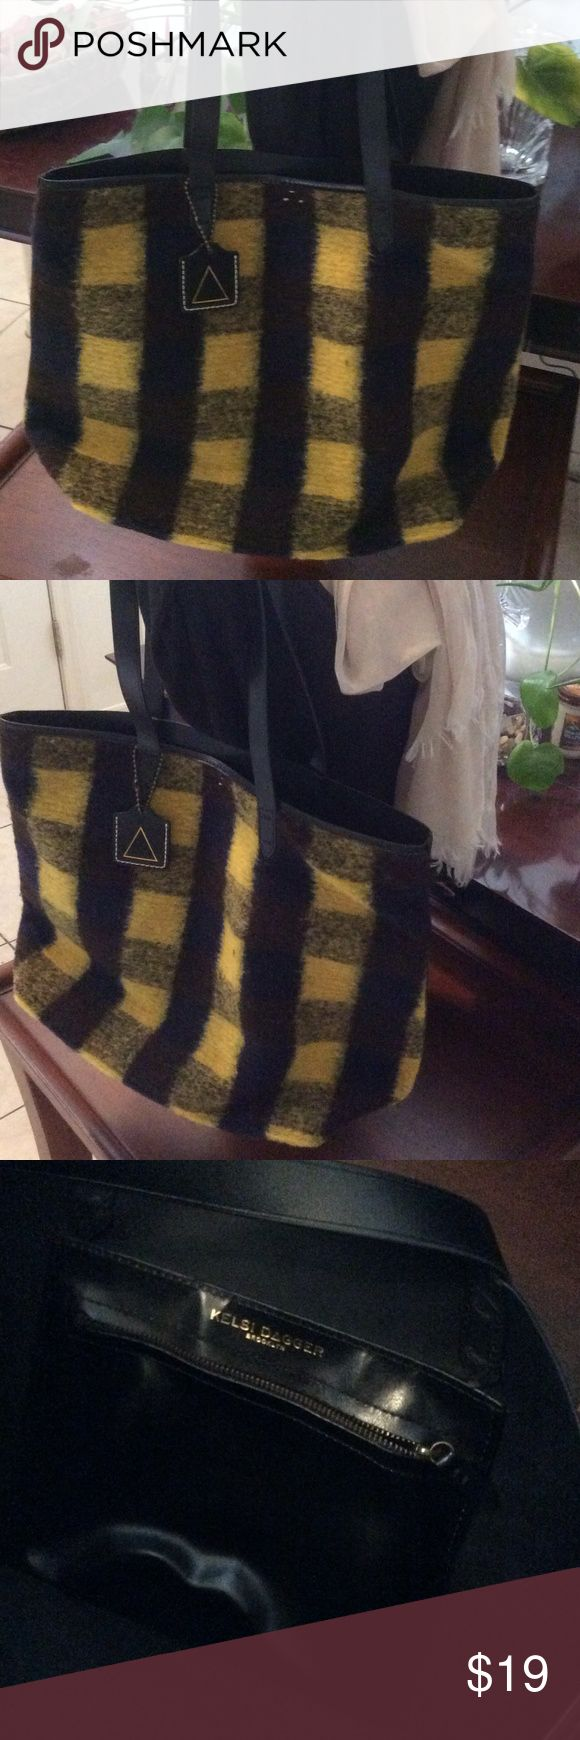 """Kelsi Dagger large tote black leather and plaid Kelsi Dagger large tote black leather and black watch plaid in yellow. Condition is very good. 20"""" x 18"""" x 3"""" Kelsi Dagger Bags Totes"""